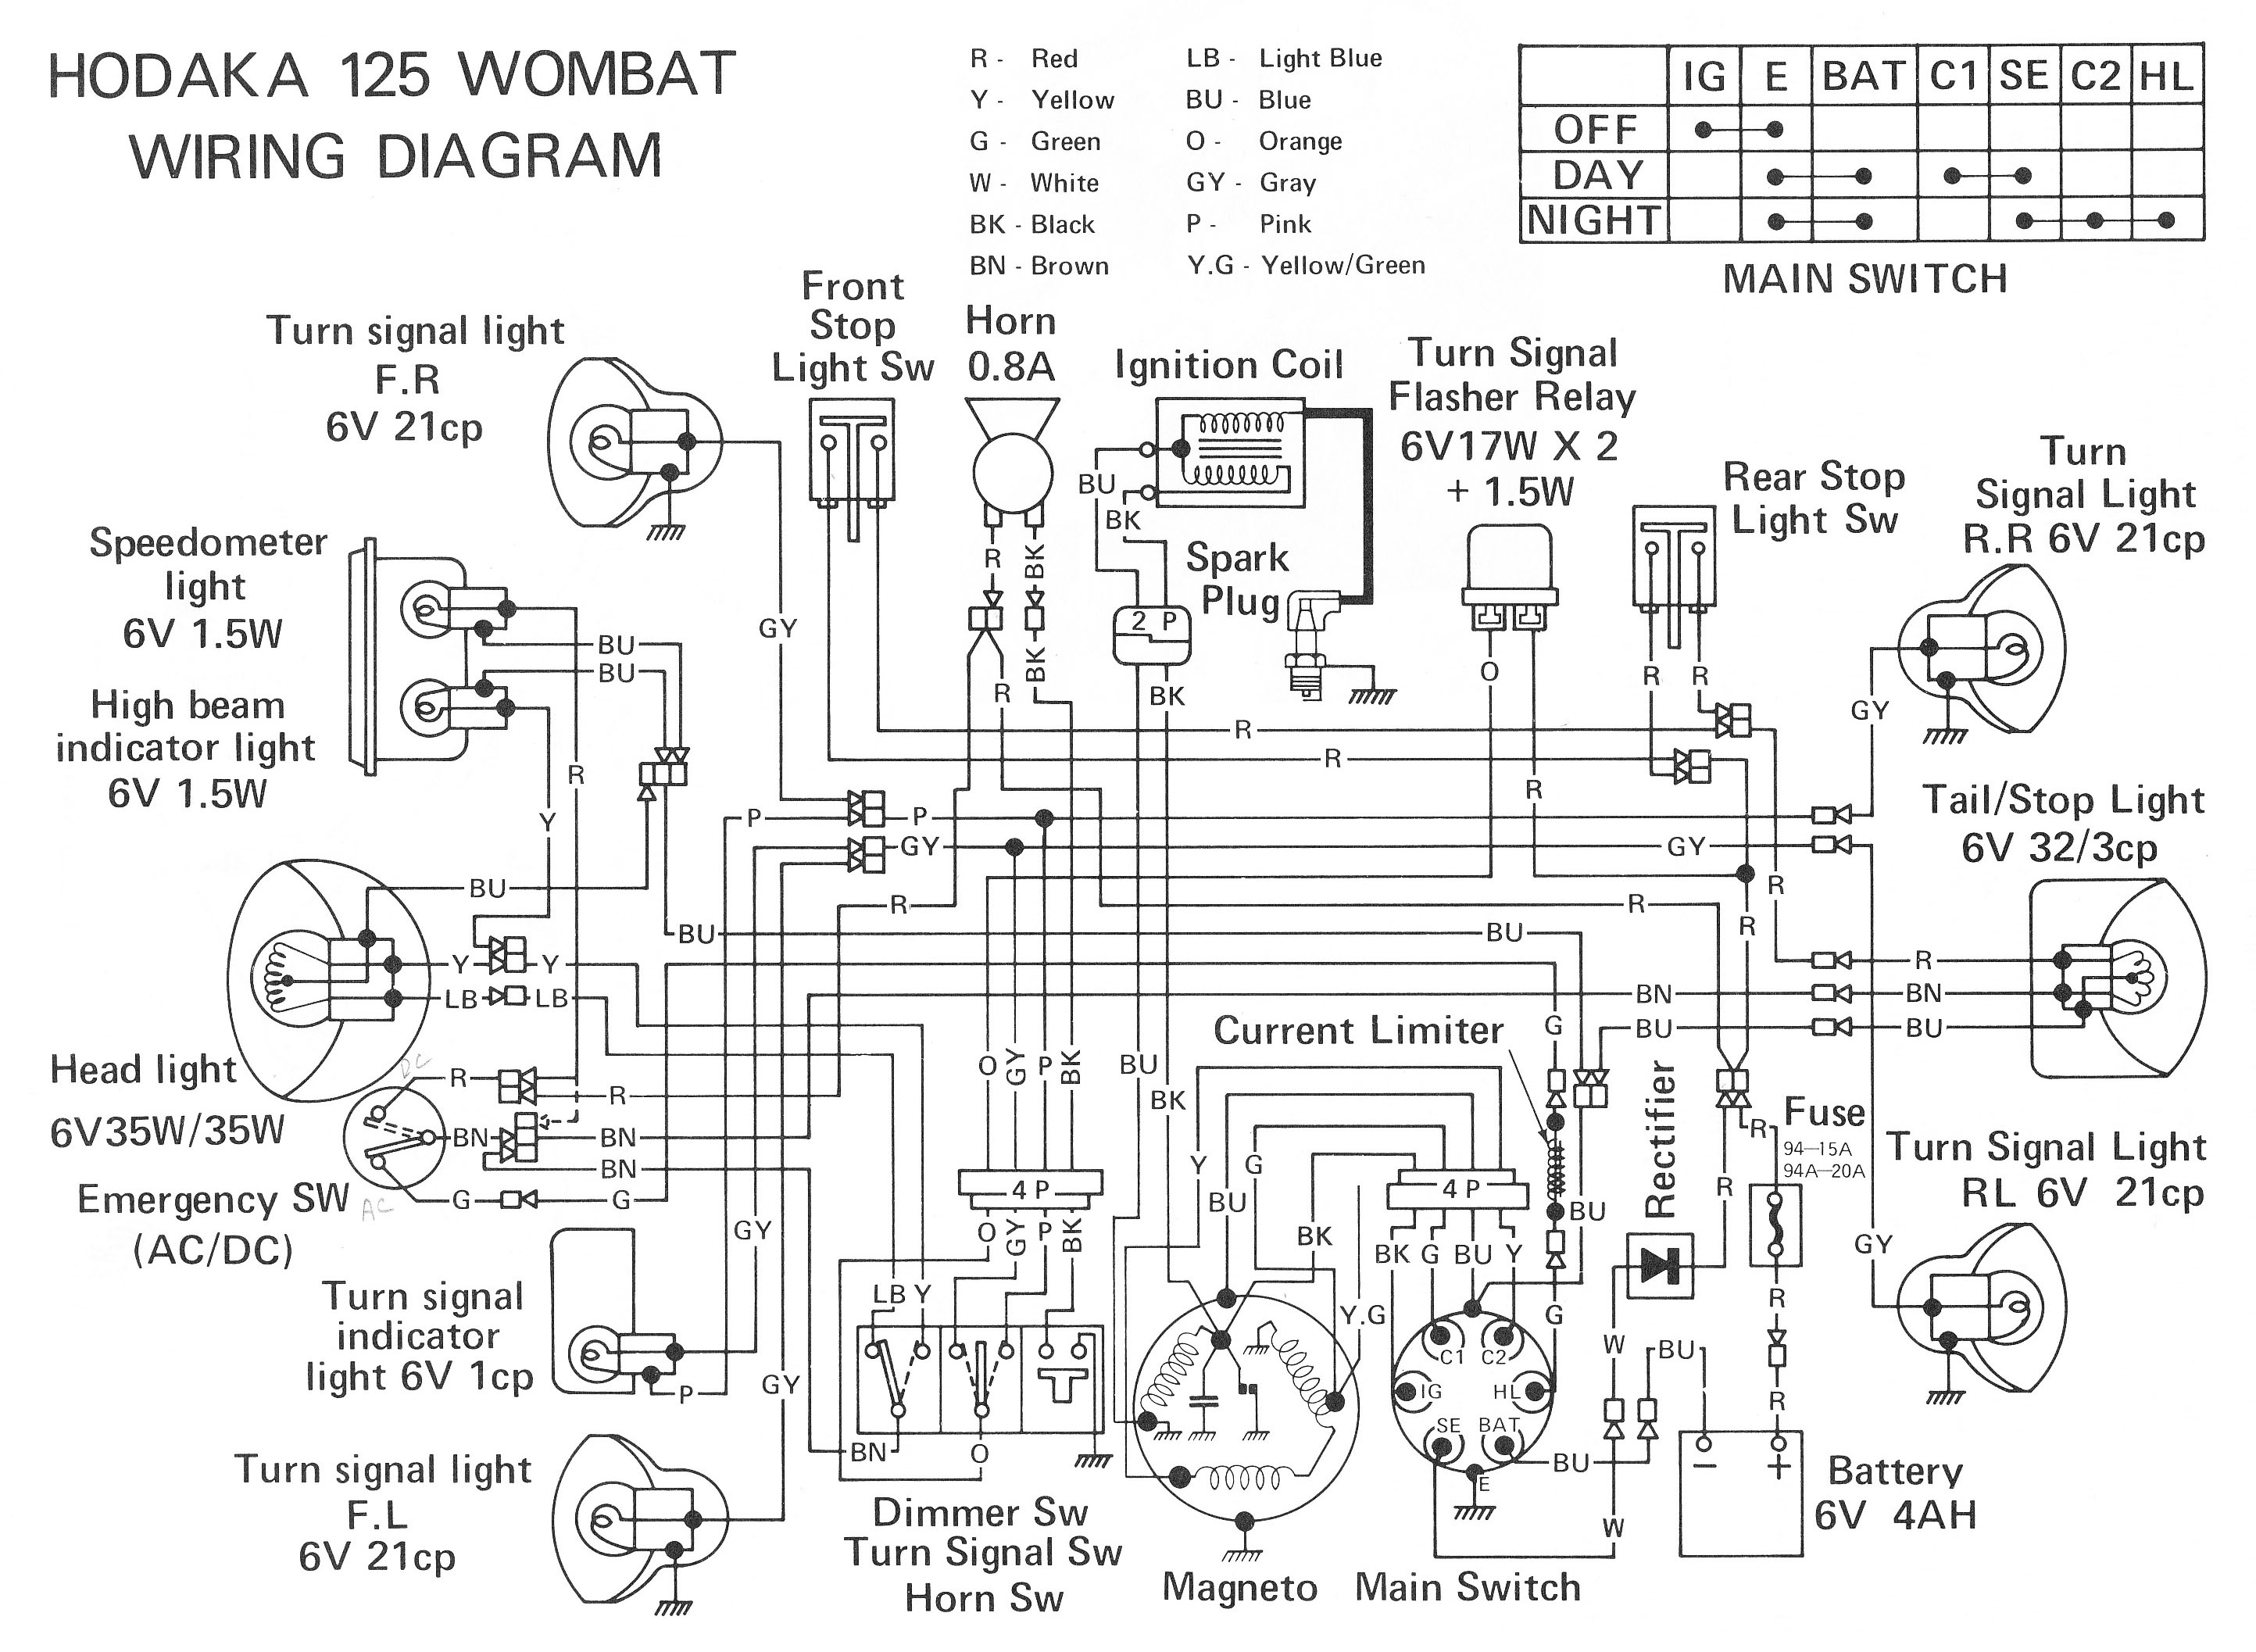 ELECTRONIC SCHEMATIC CIRCUIT DIAGRAMS